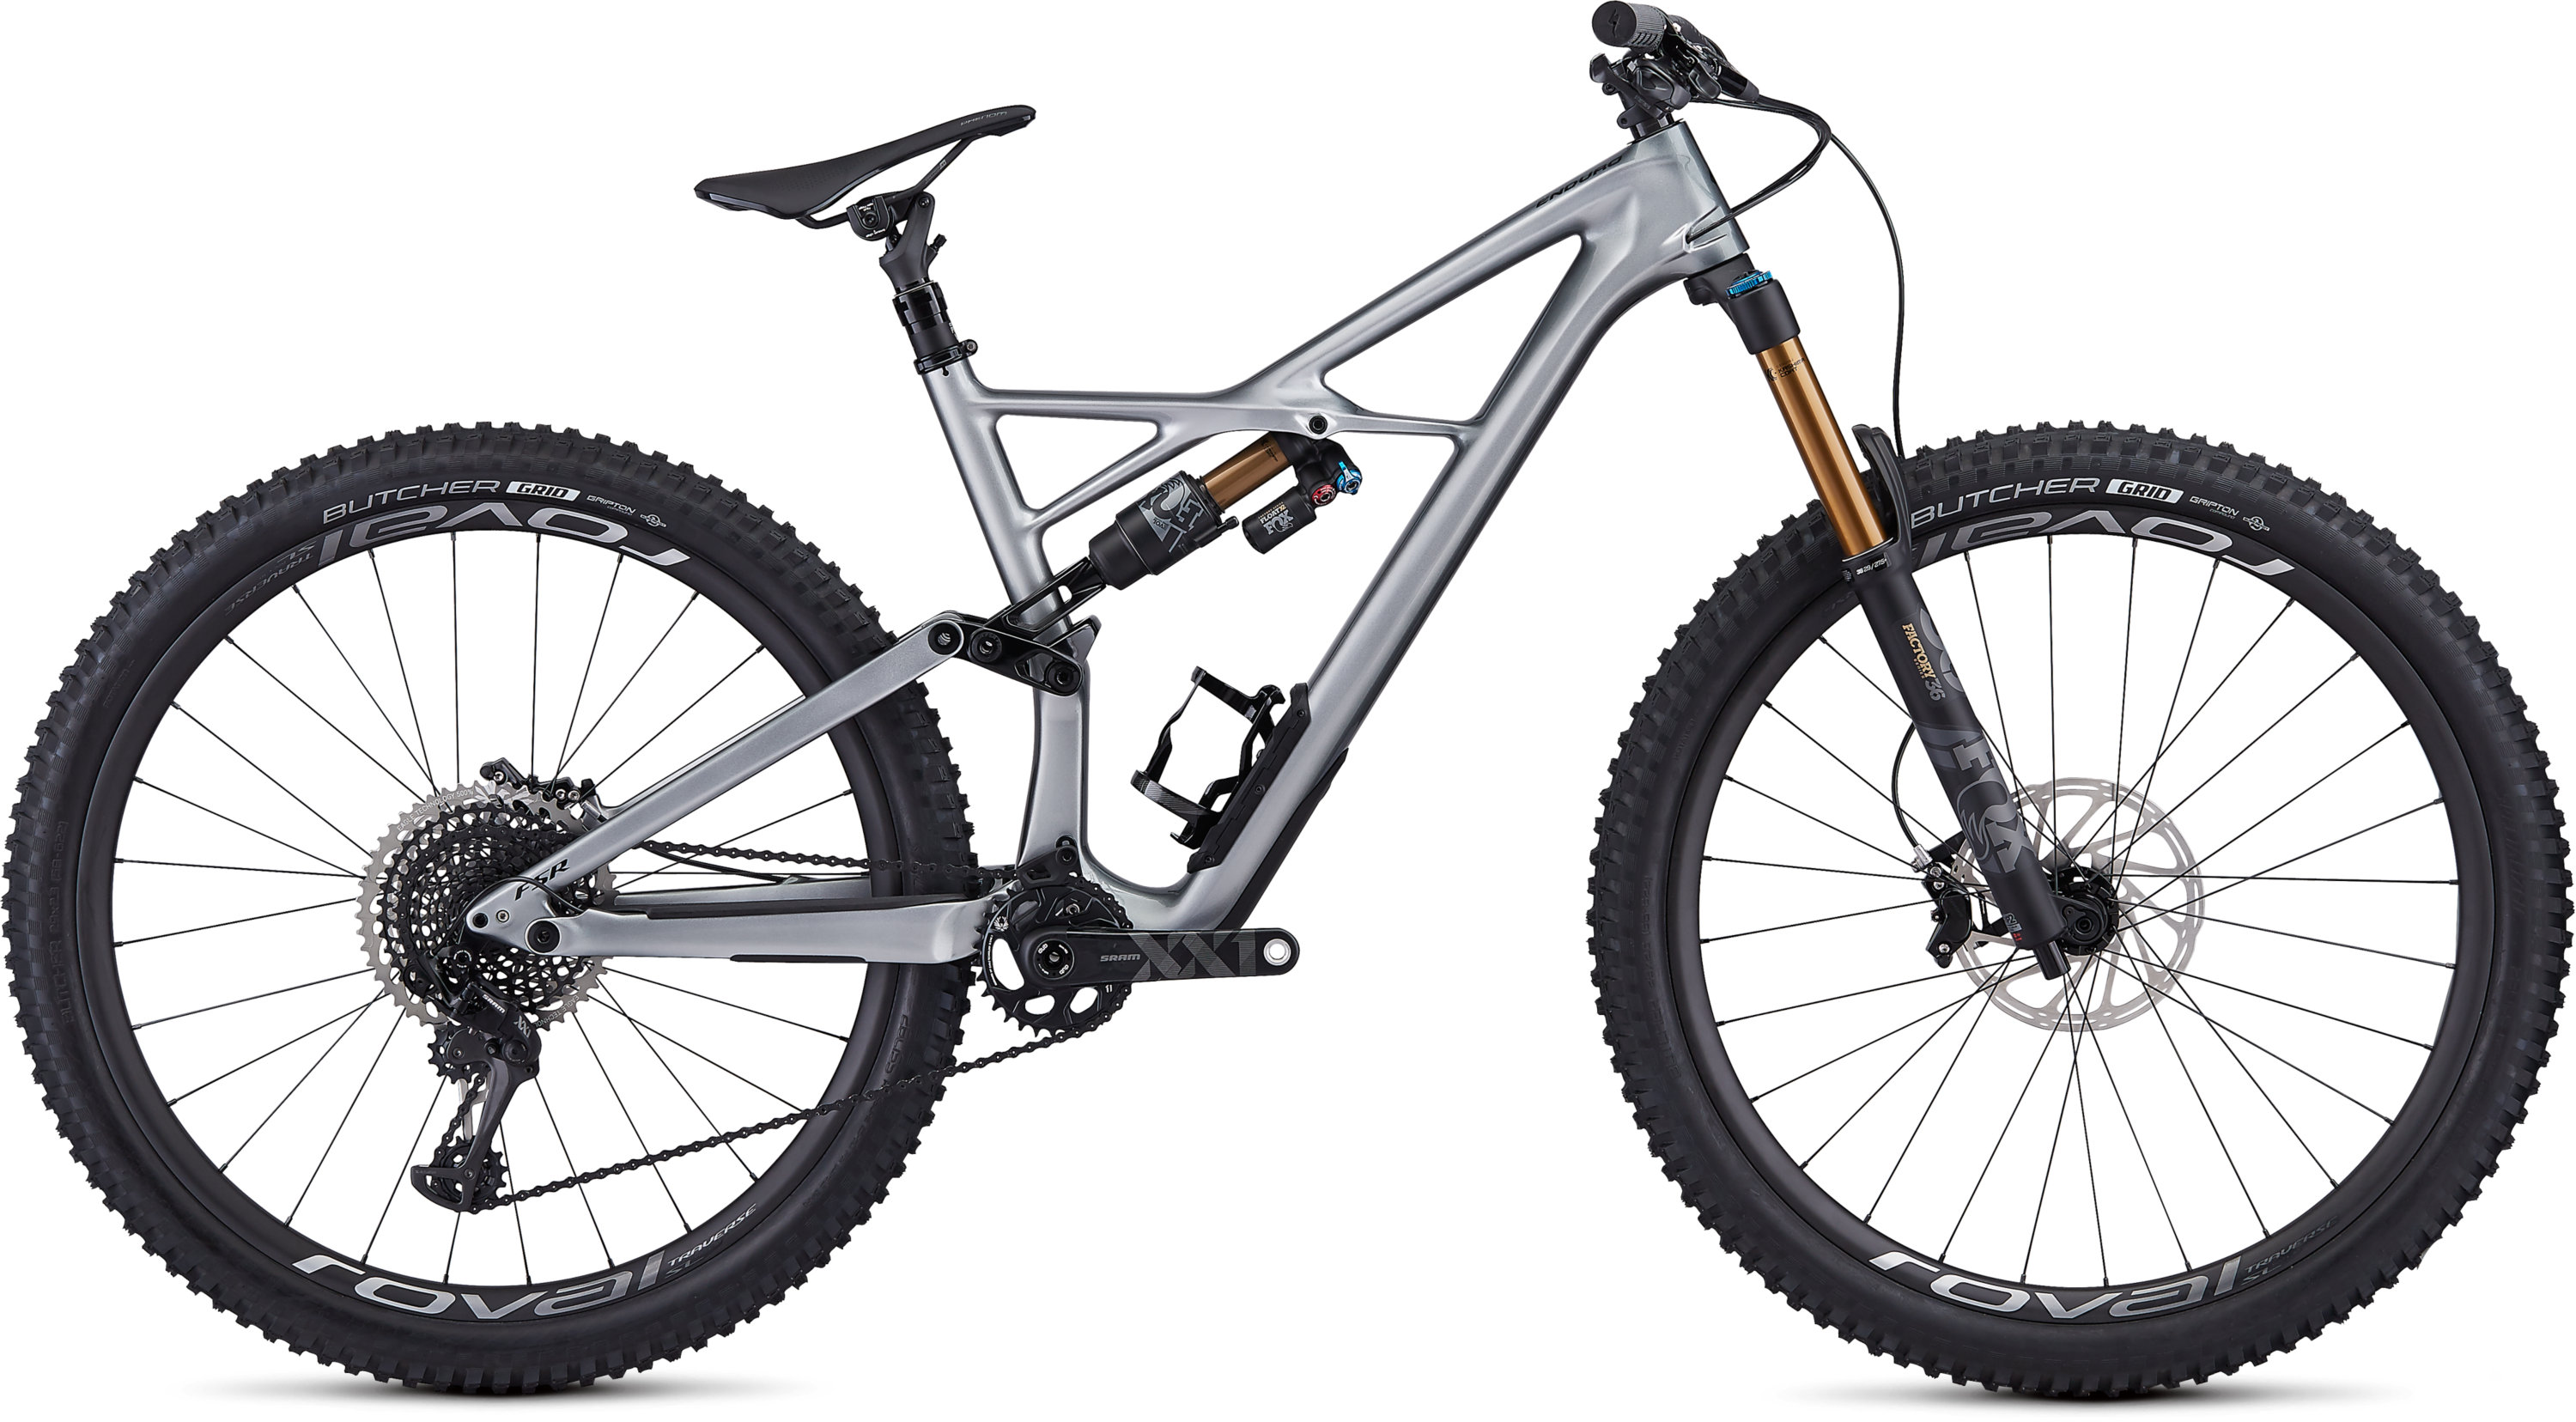 S-Works Enduro 29 | Specialized.com